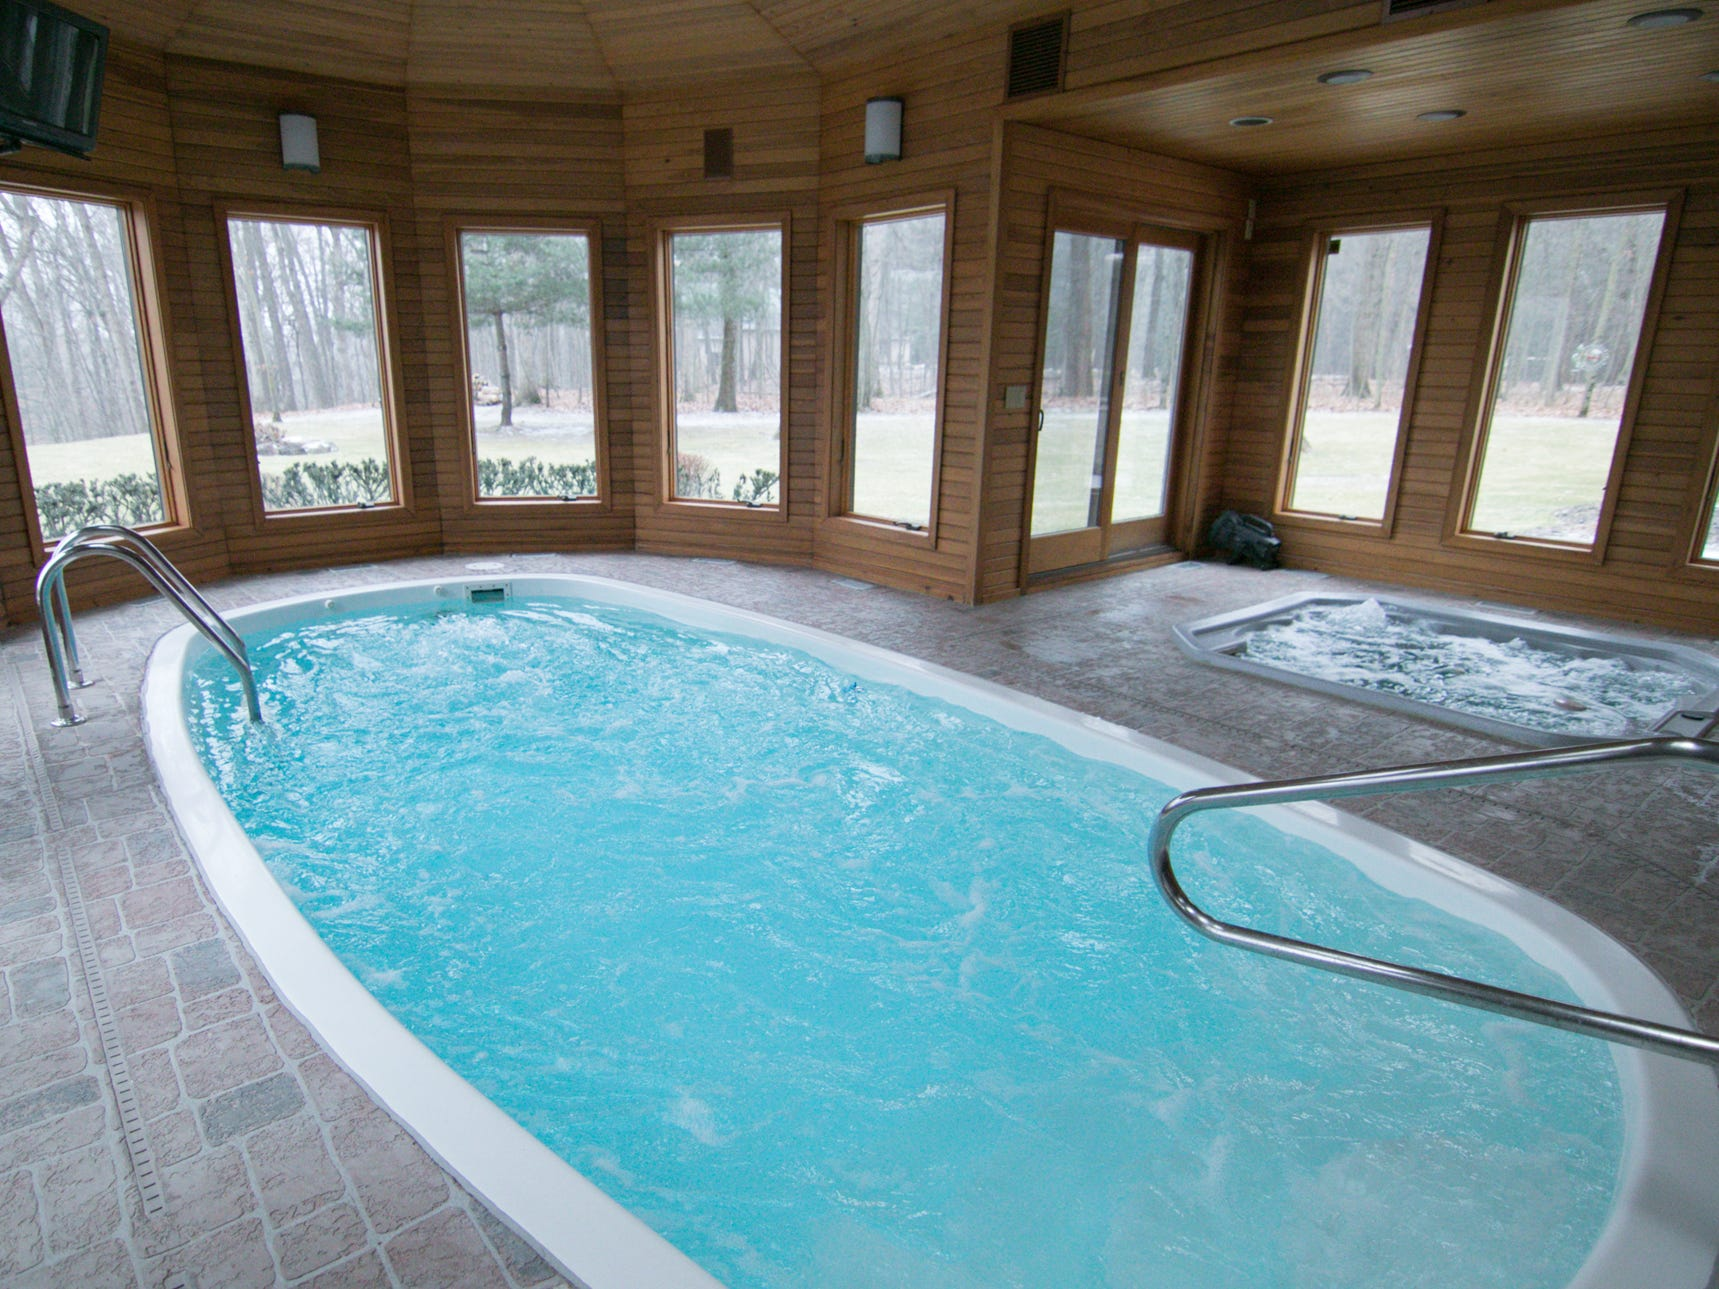 An indoor pool is heated to temperatures in the 90s, while the hot tub is over 100 degrees regardless of the weather outside of the Cross Creek Drive home, shown Thursday, Jan. 17, 2019.